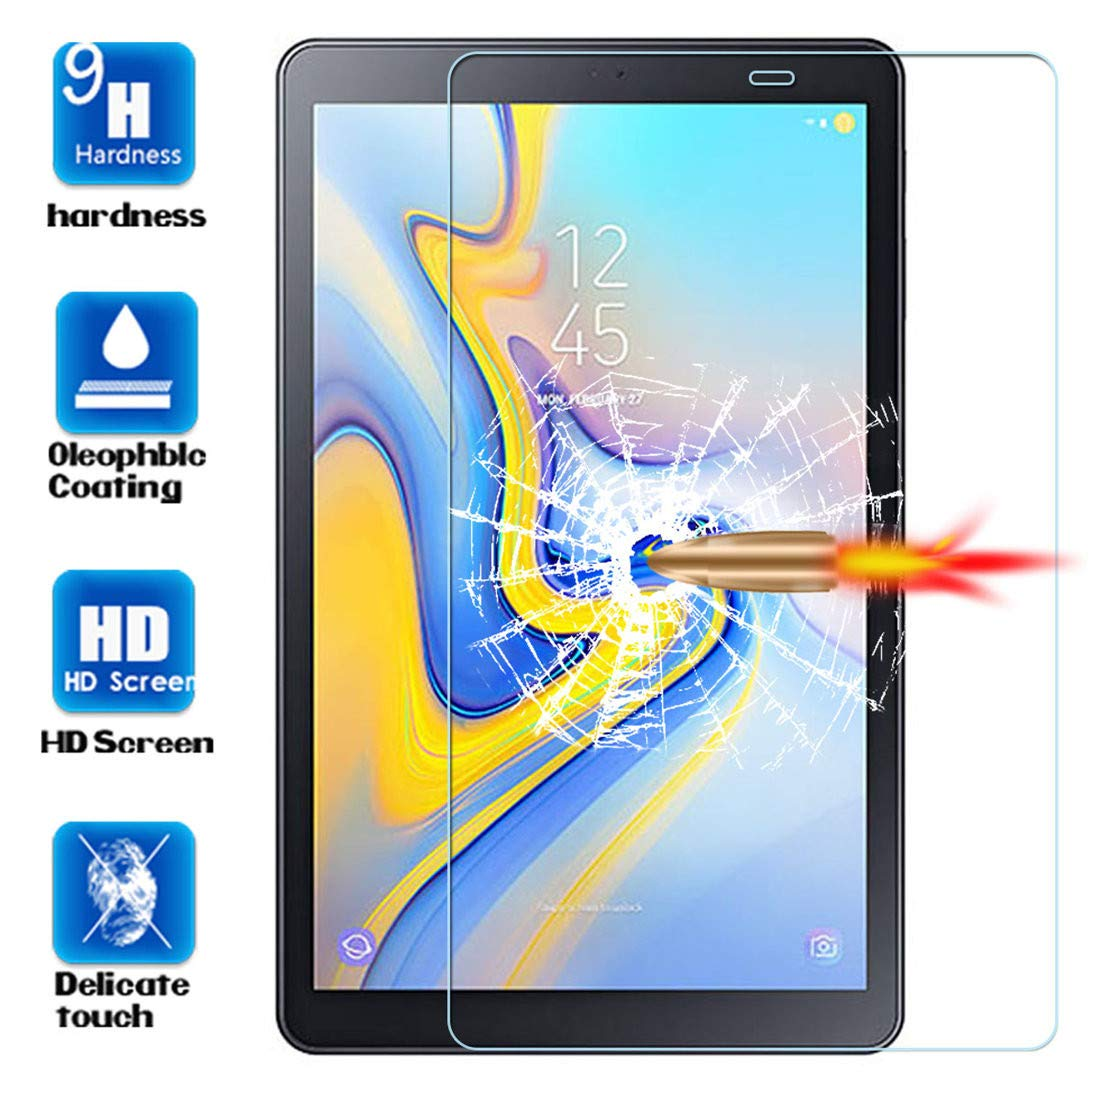 Tempered Glass For Samsung Galaxy Tab A 10.1 2019 T510 T515 SM-T510 SM-T515 Screen Protector Scratch Proof Protective Glass Film